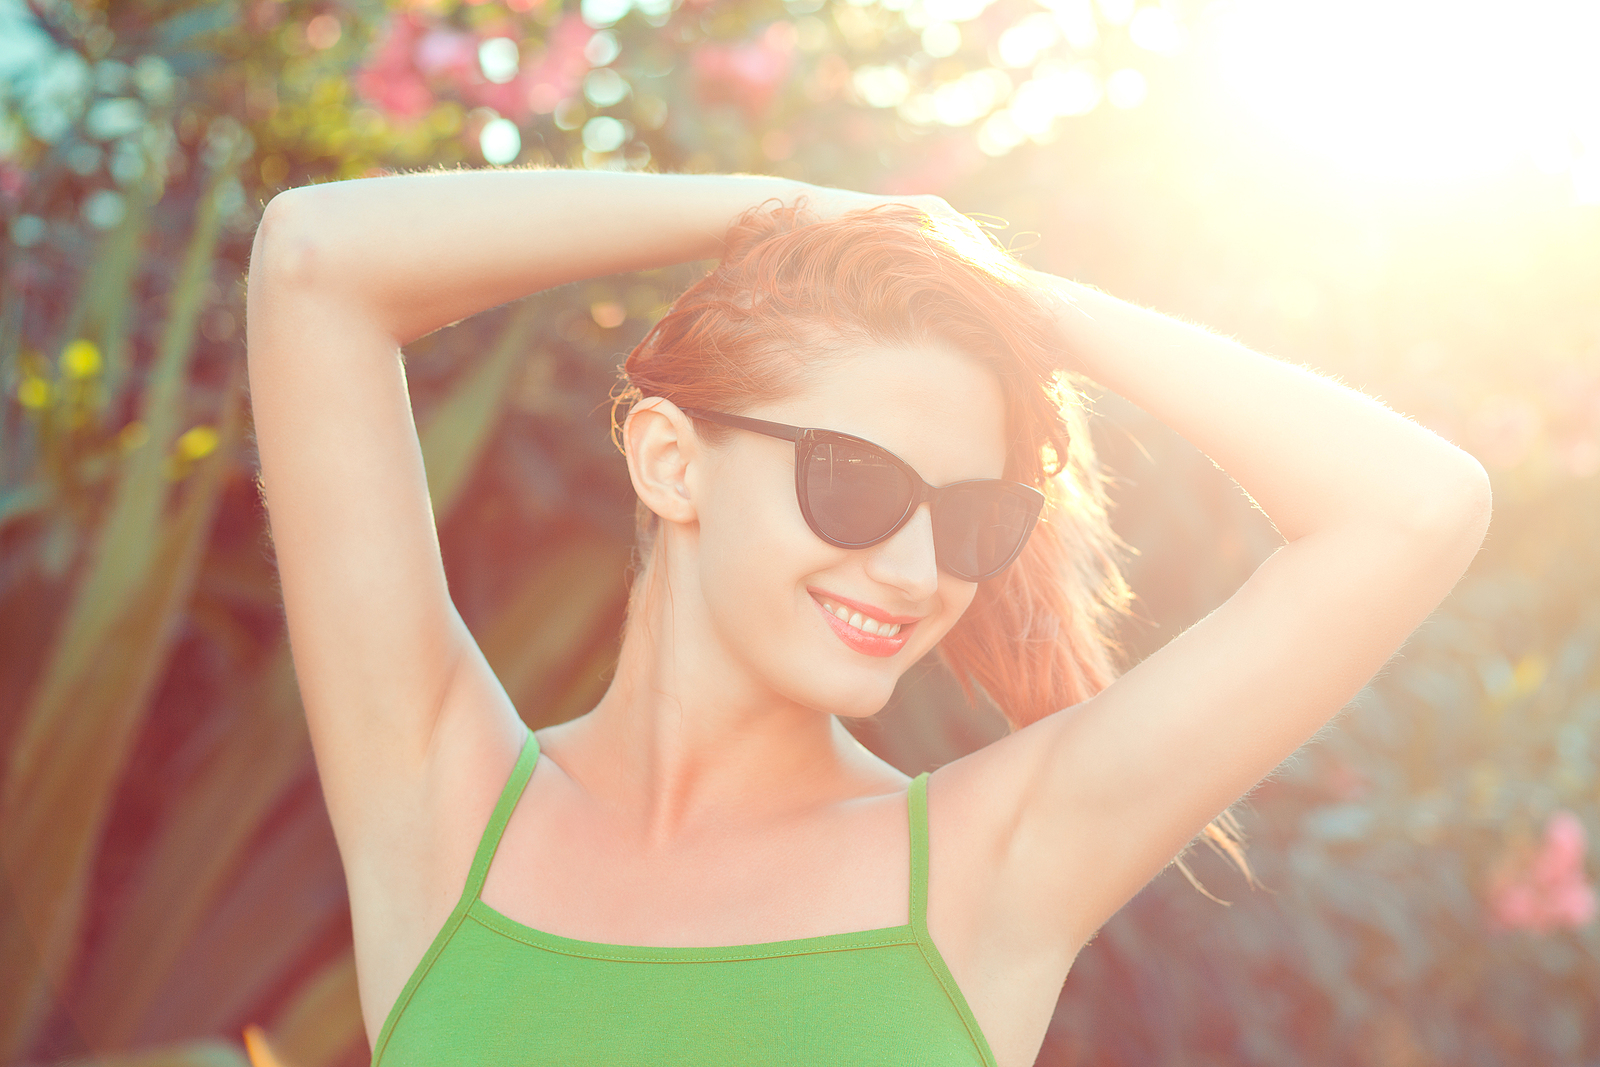 Closeup Portrait Happy Young Business Woman In Sunglasses and Green shirt in the sun. She feels free, just like women in miramar, FL can feel after doing anxiety treatment with a skilled online therapist in Florida here.